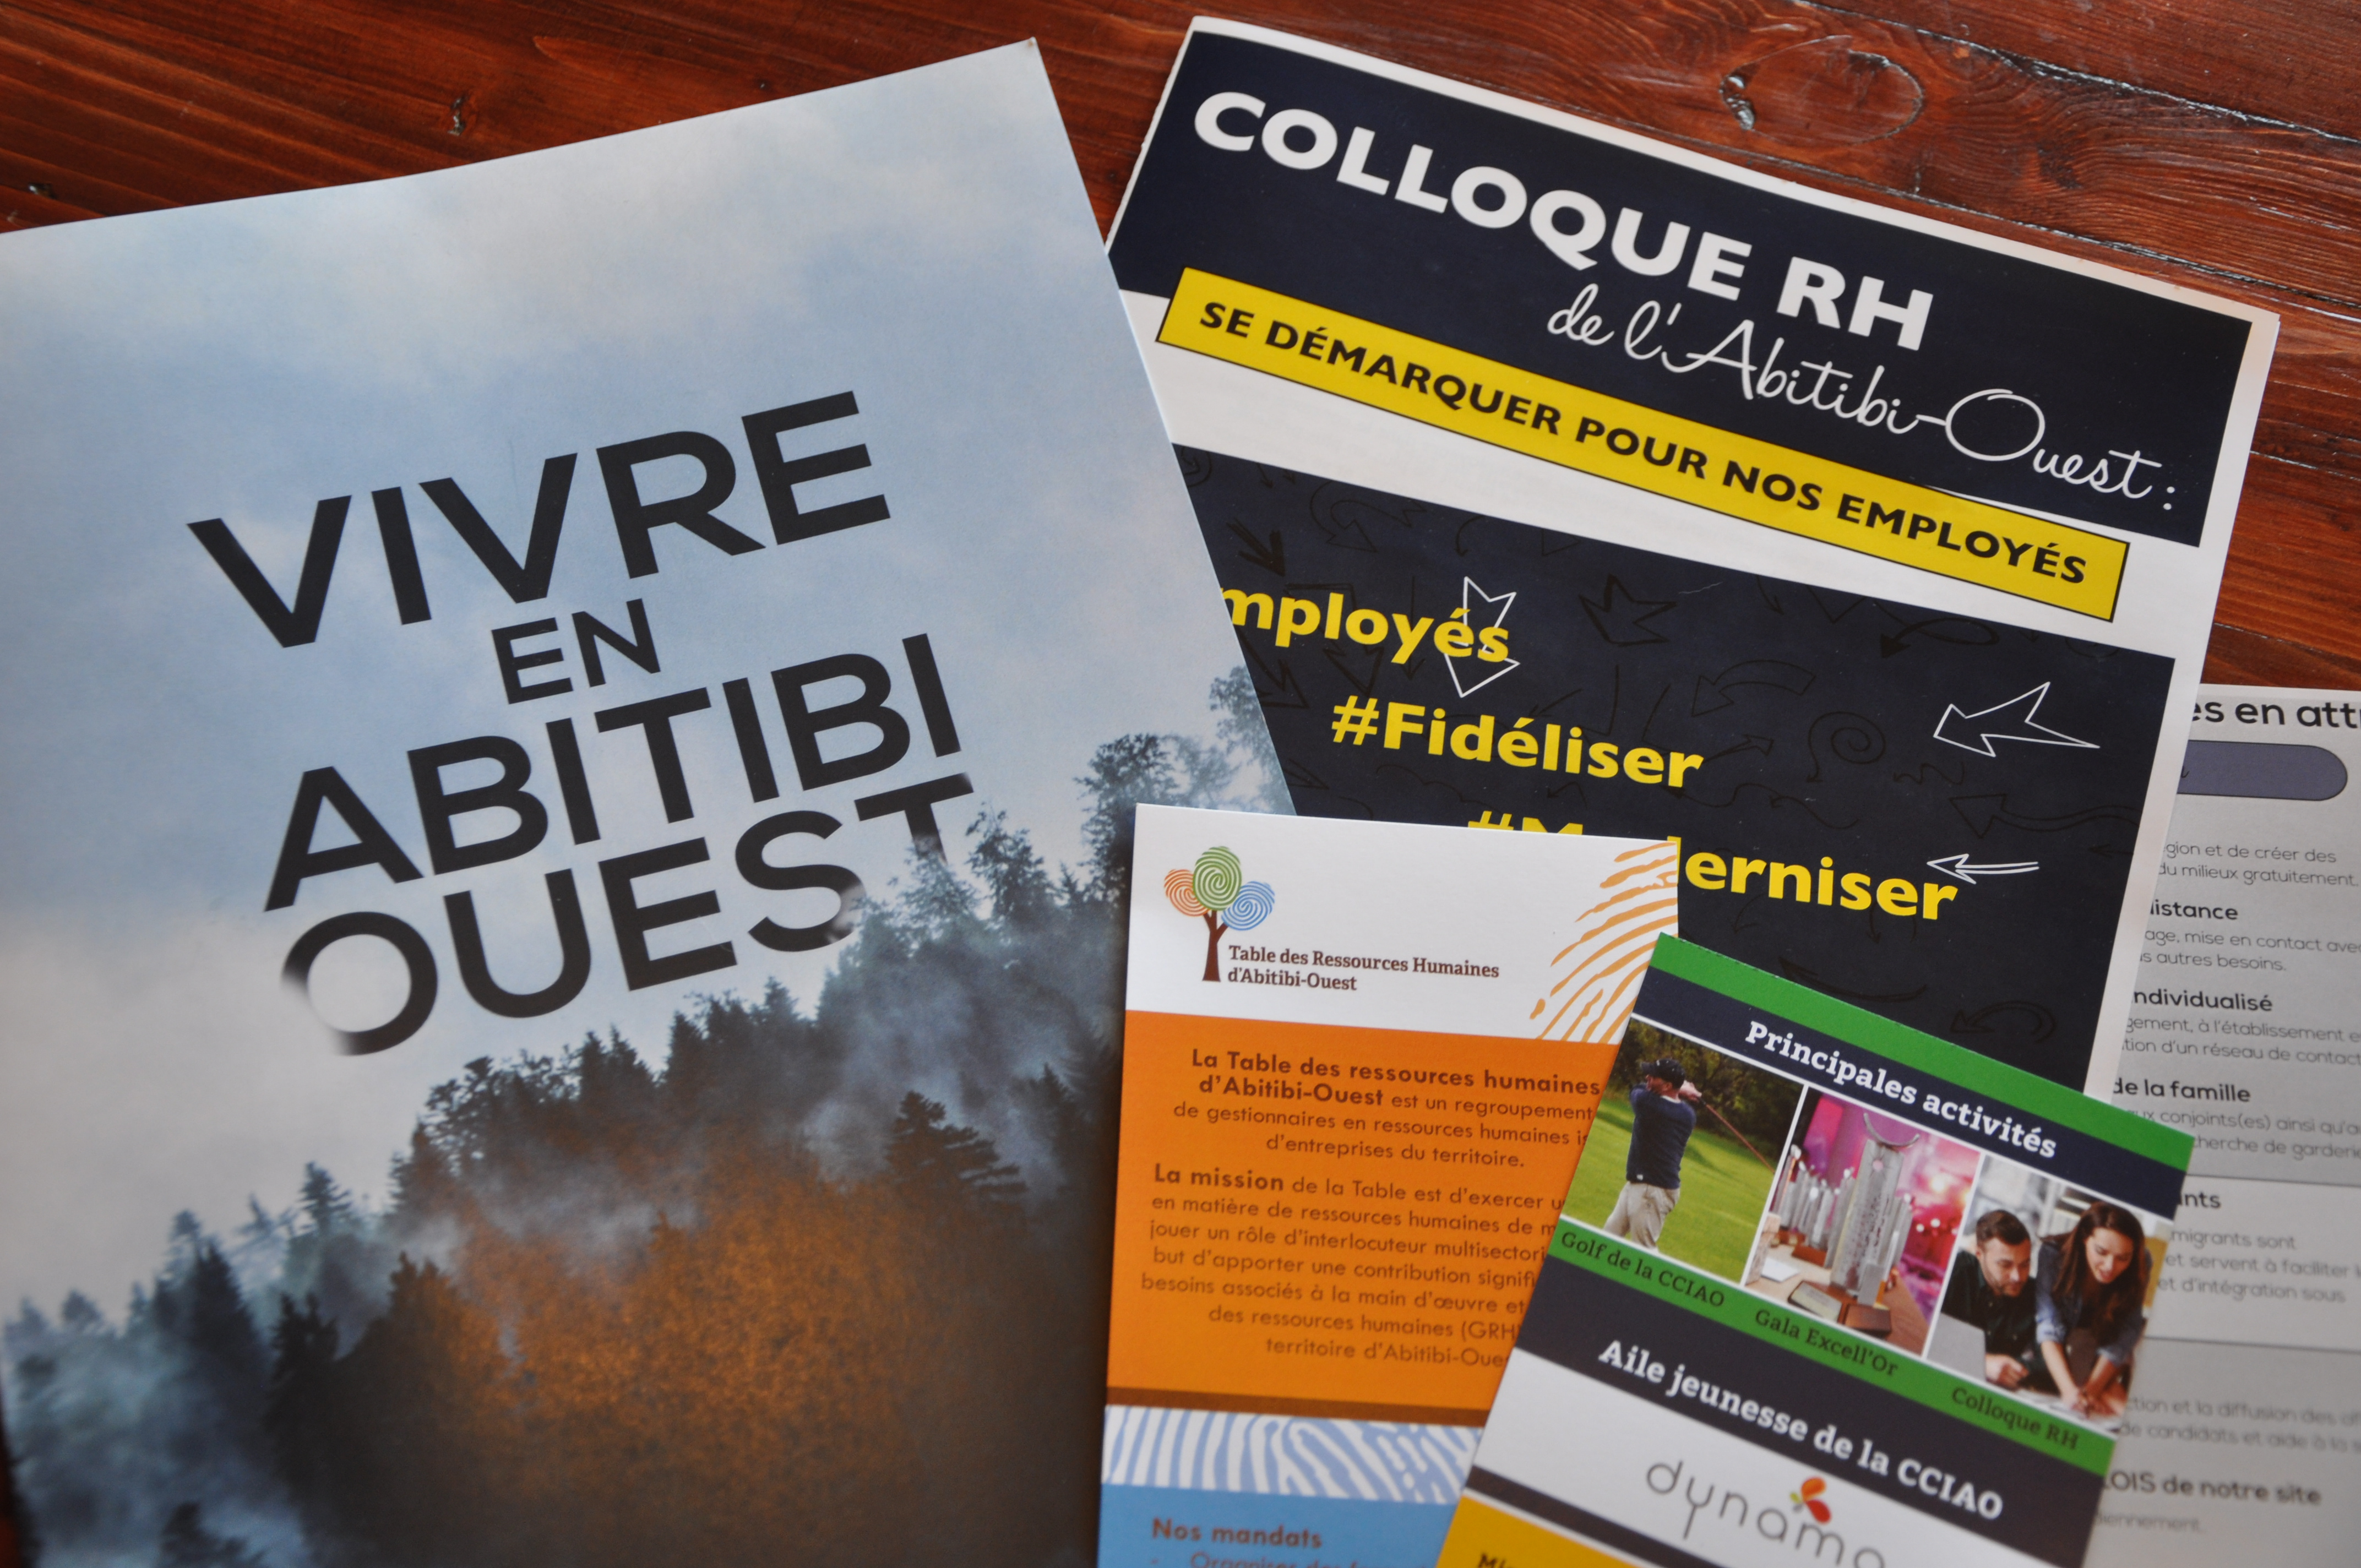 Colloque RH 2019